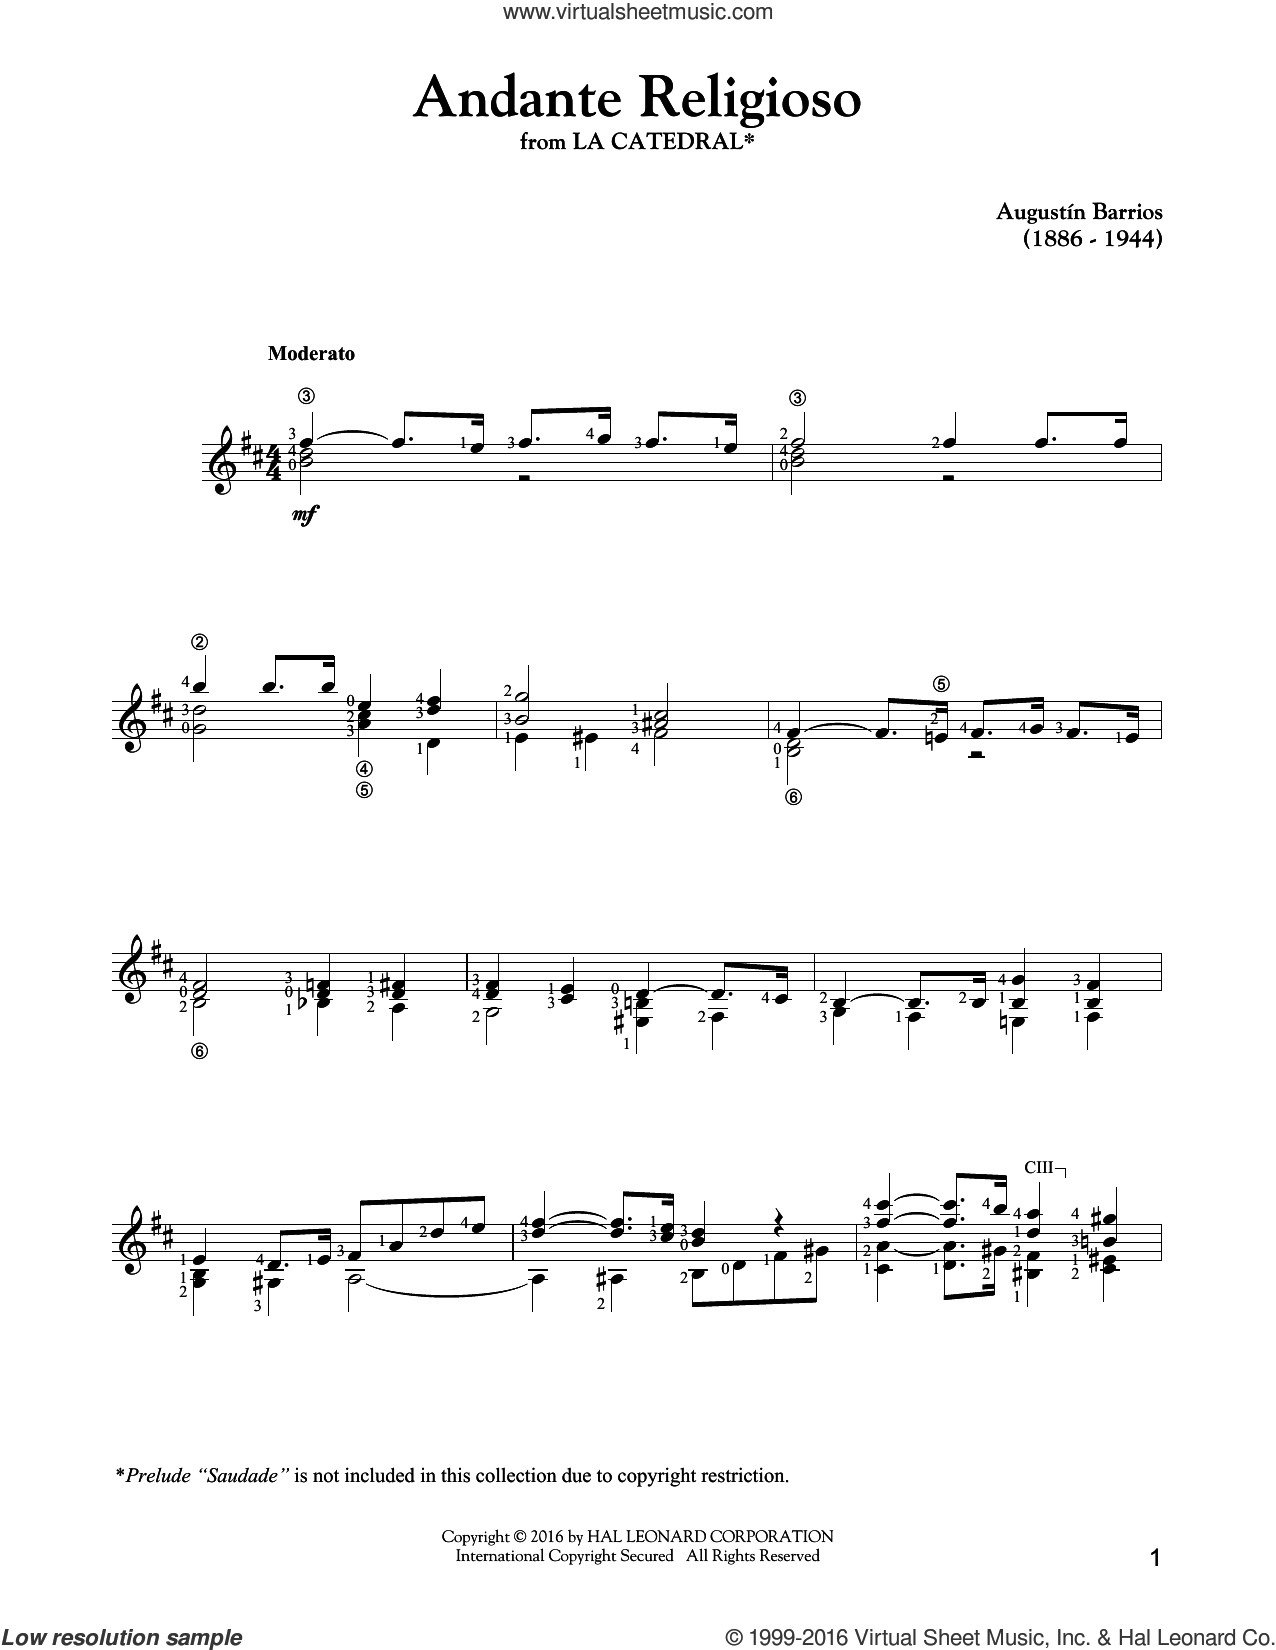 Andante Religioso sheet music for guitar solo by Agustin Barrios, classical score, intermediate. Score Image Preview.